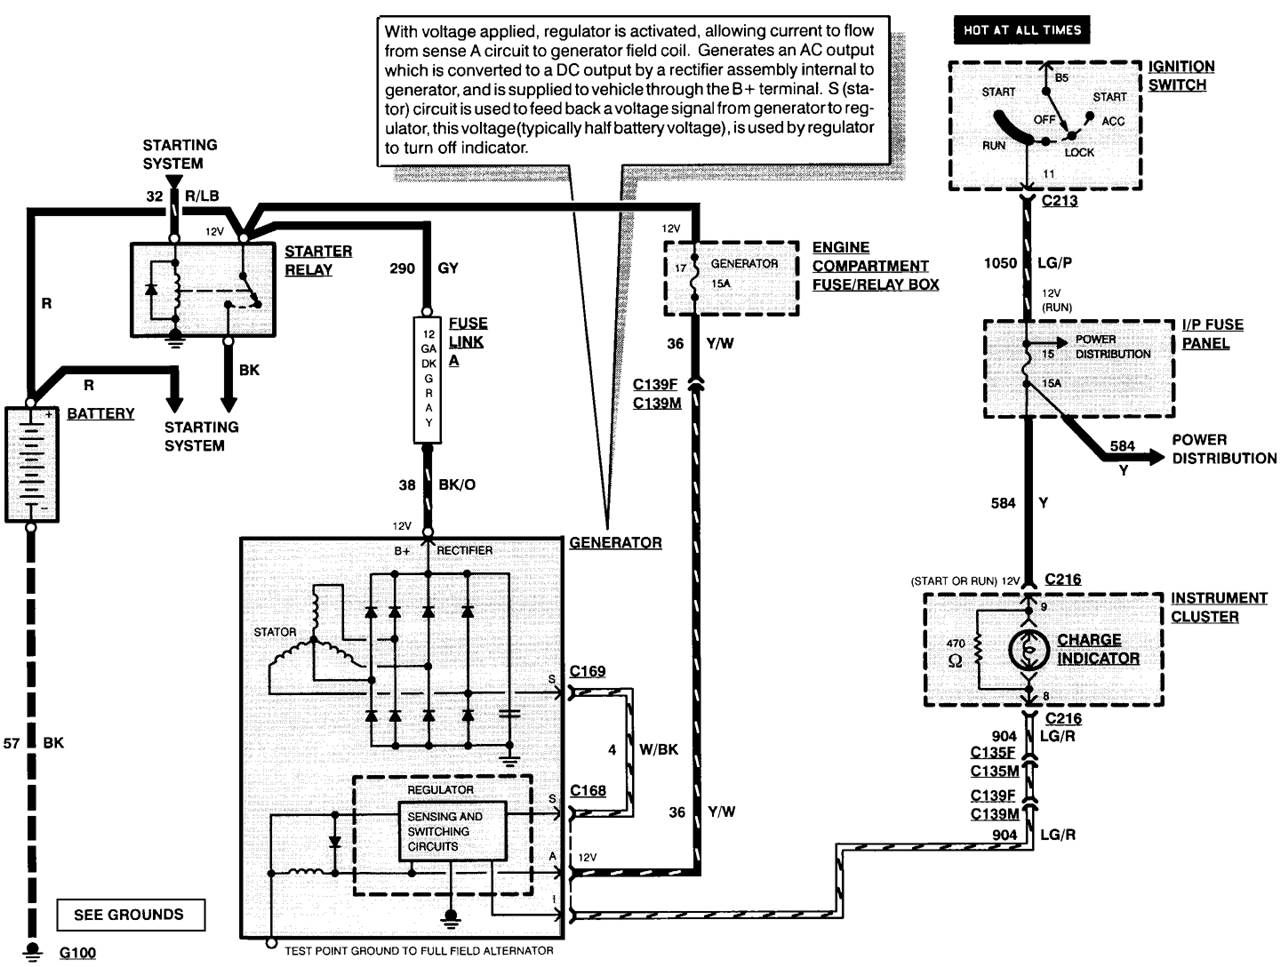 Ford Alternator Wiring Diagrams on ford taurus fuse panel diagram